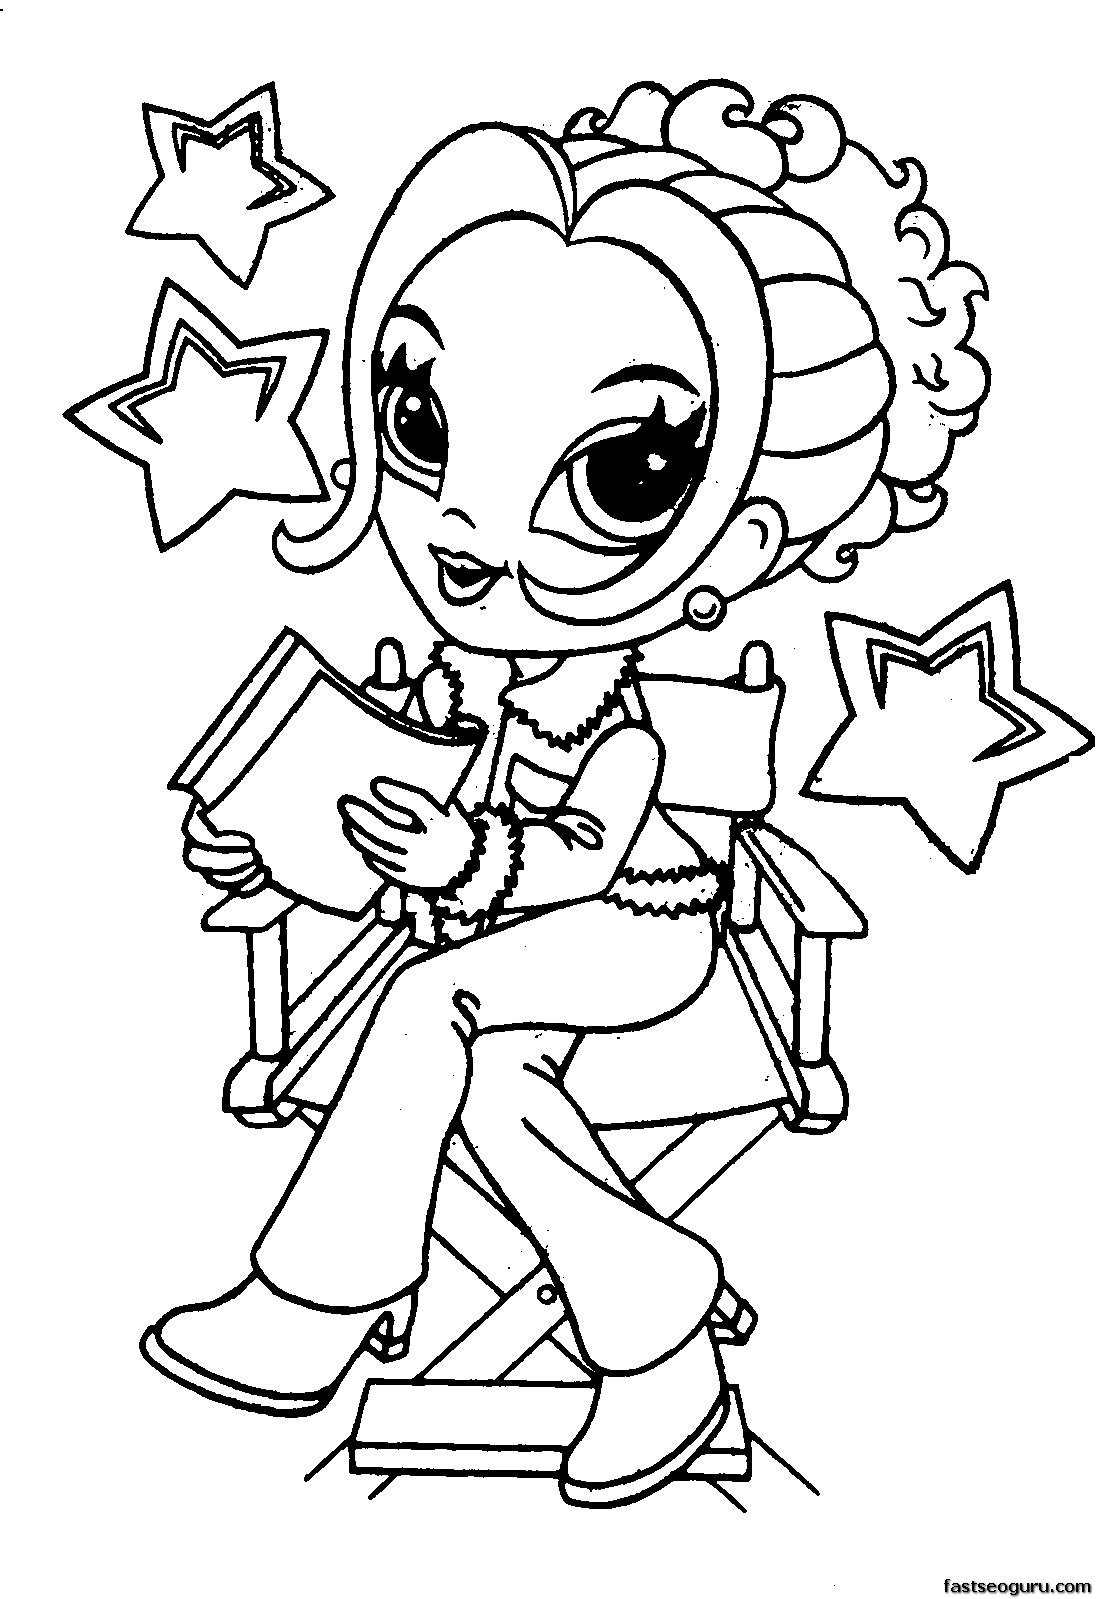 Cute girl coloring pages to download and print for free for Fun coloring pages for girls